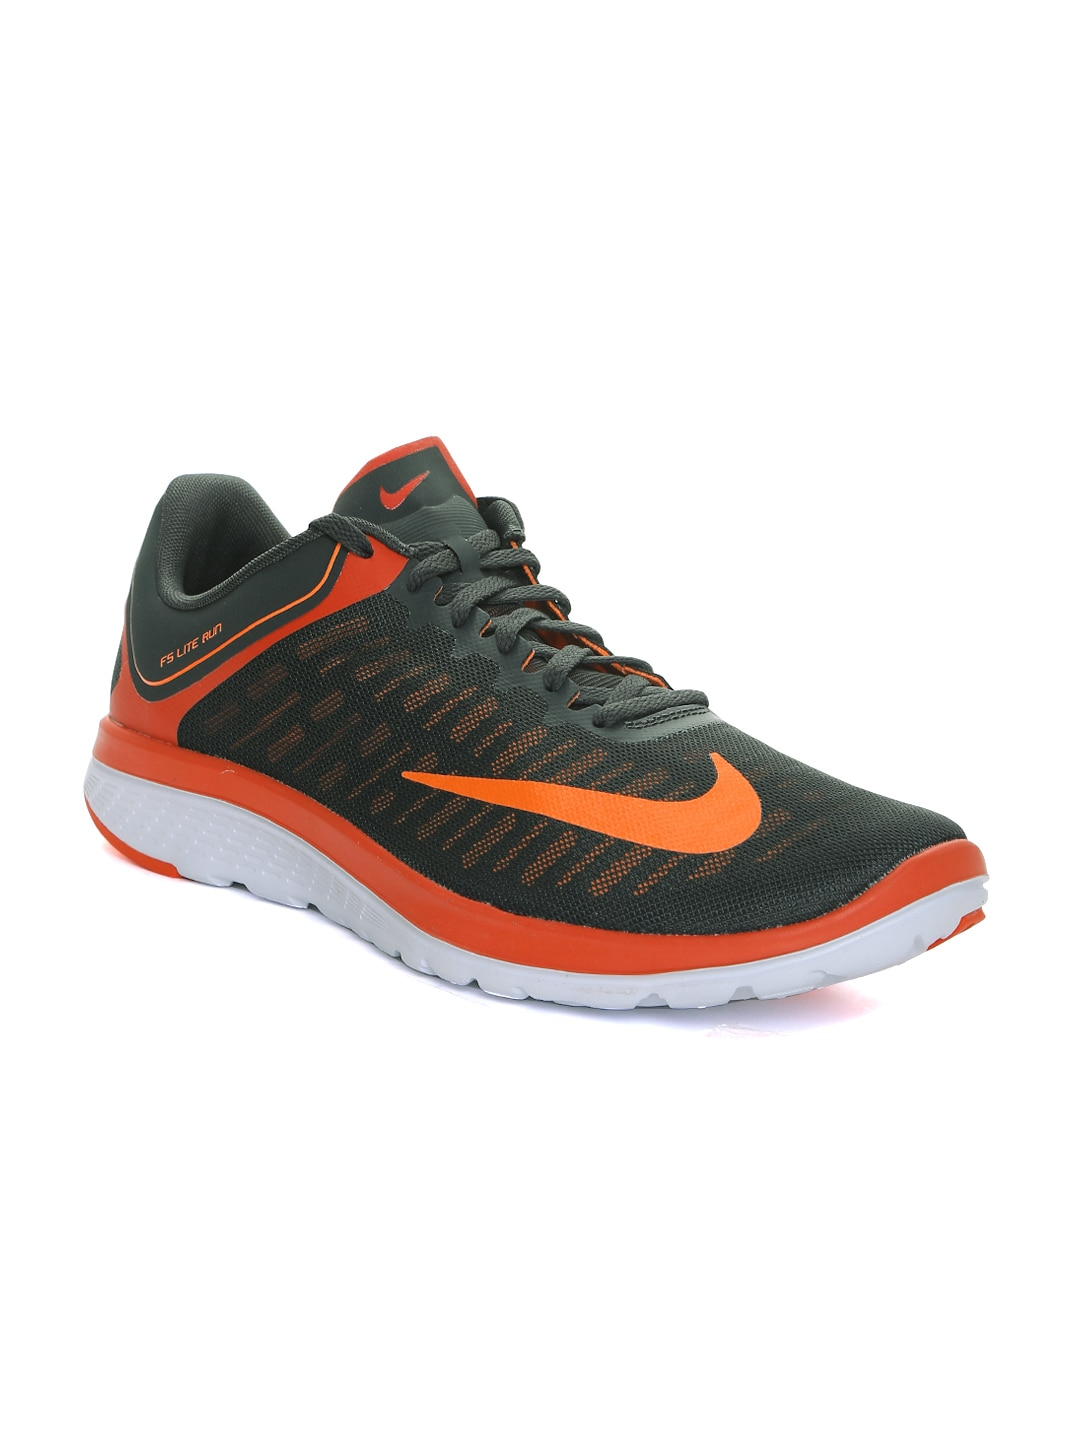 Nike Basketball Shoes Online India